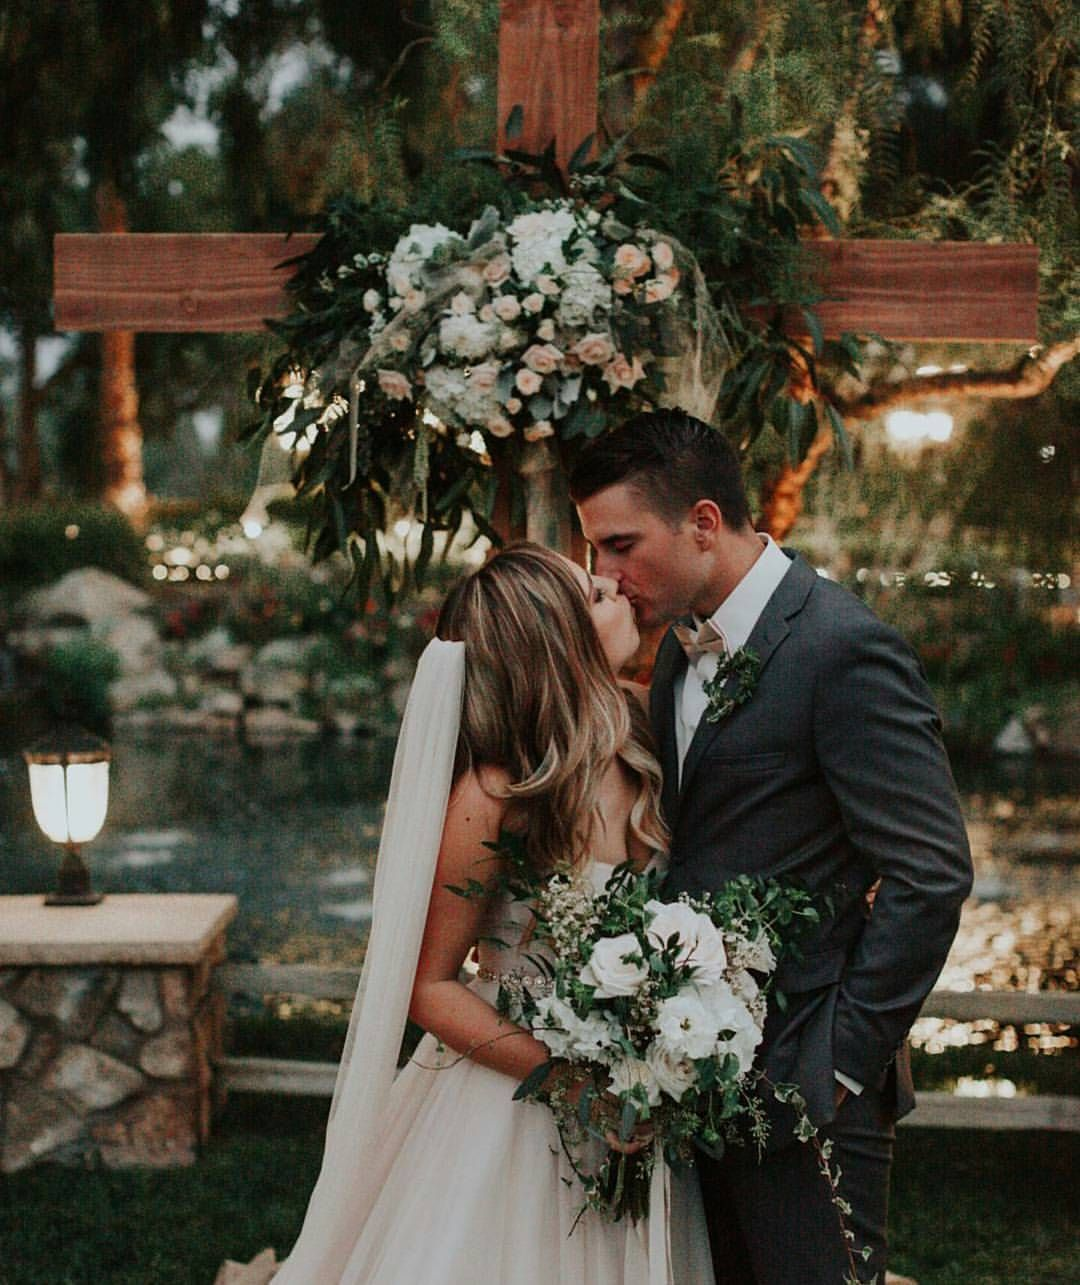 Wedding Chapel Decoration Ideas: Pin By Jessica Marie On Flowers In 2019